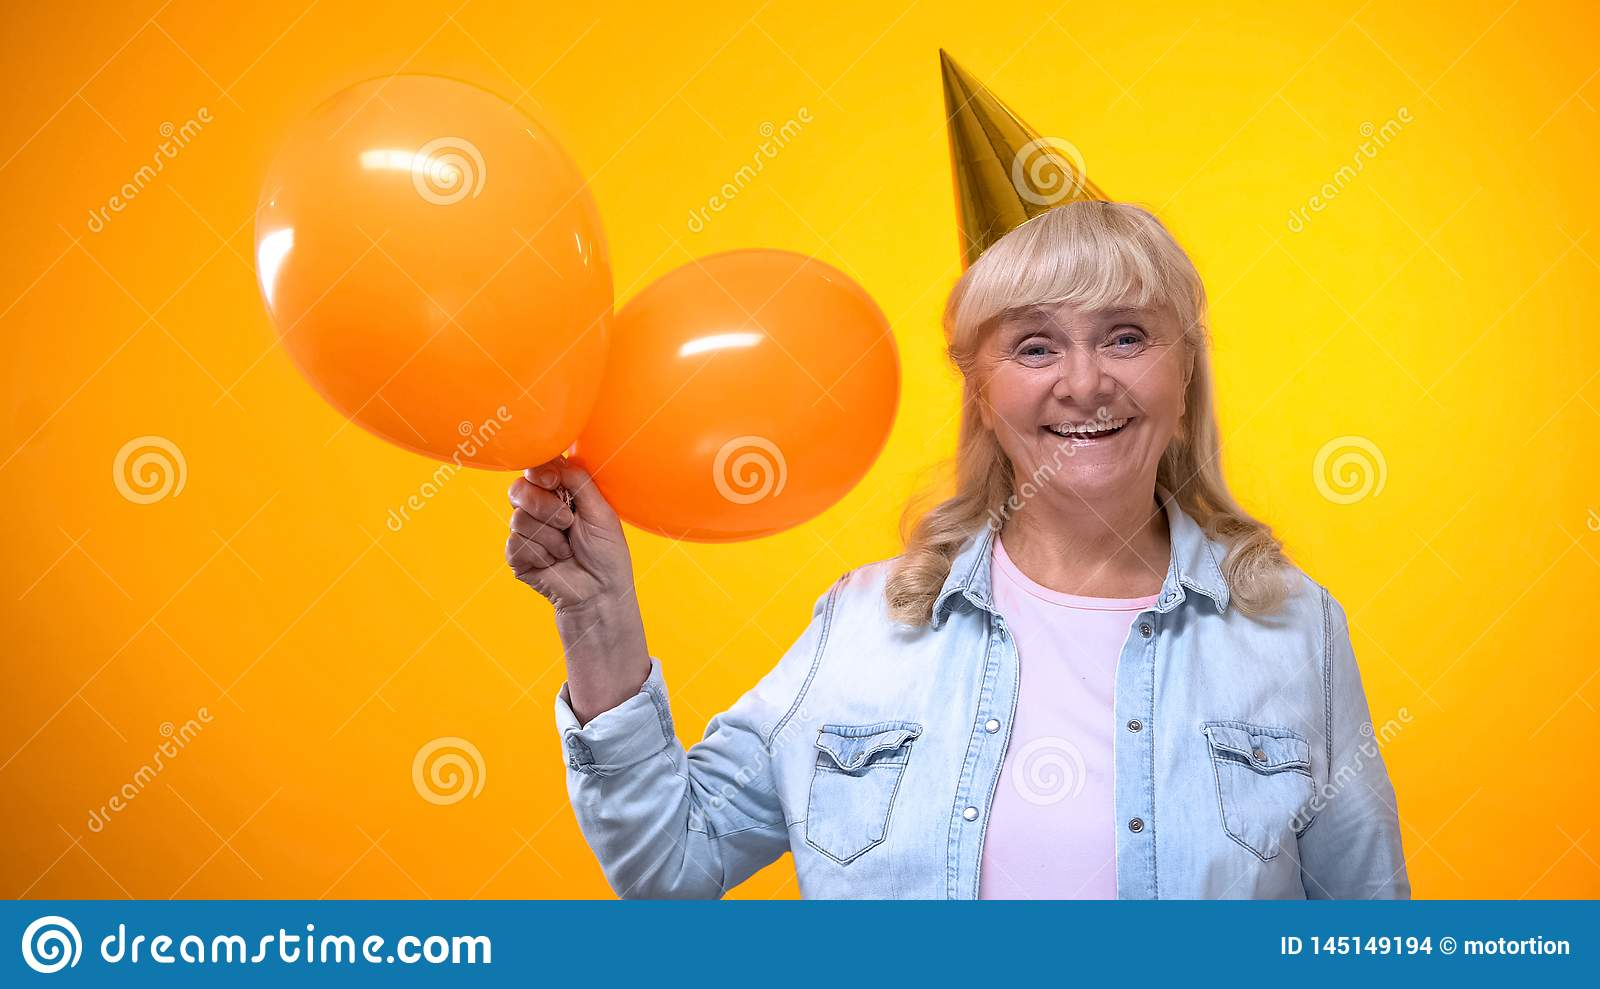 Happy smiling elderly lady holding balloons on yellow background, anniversary